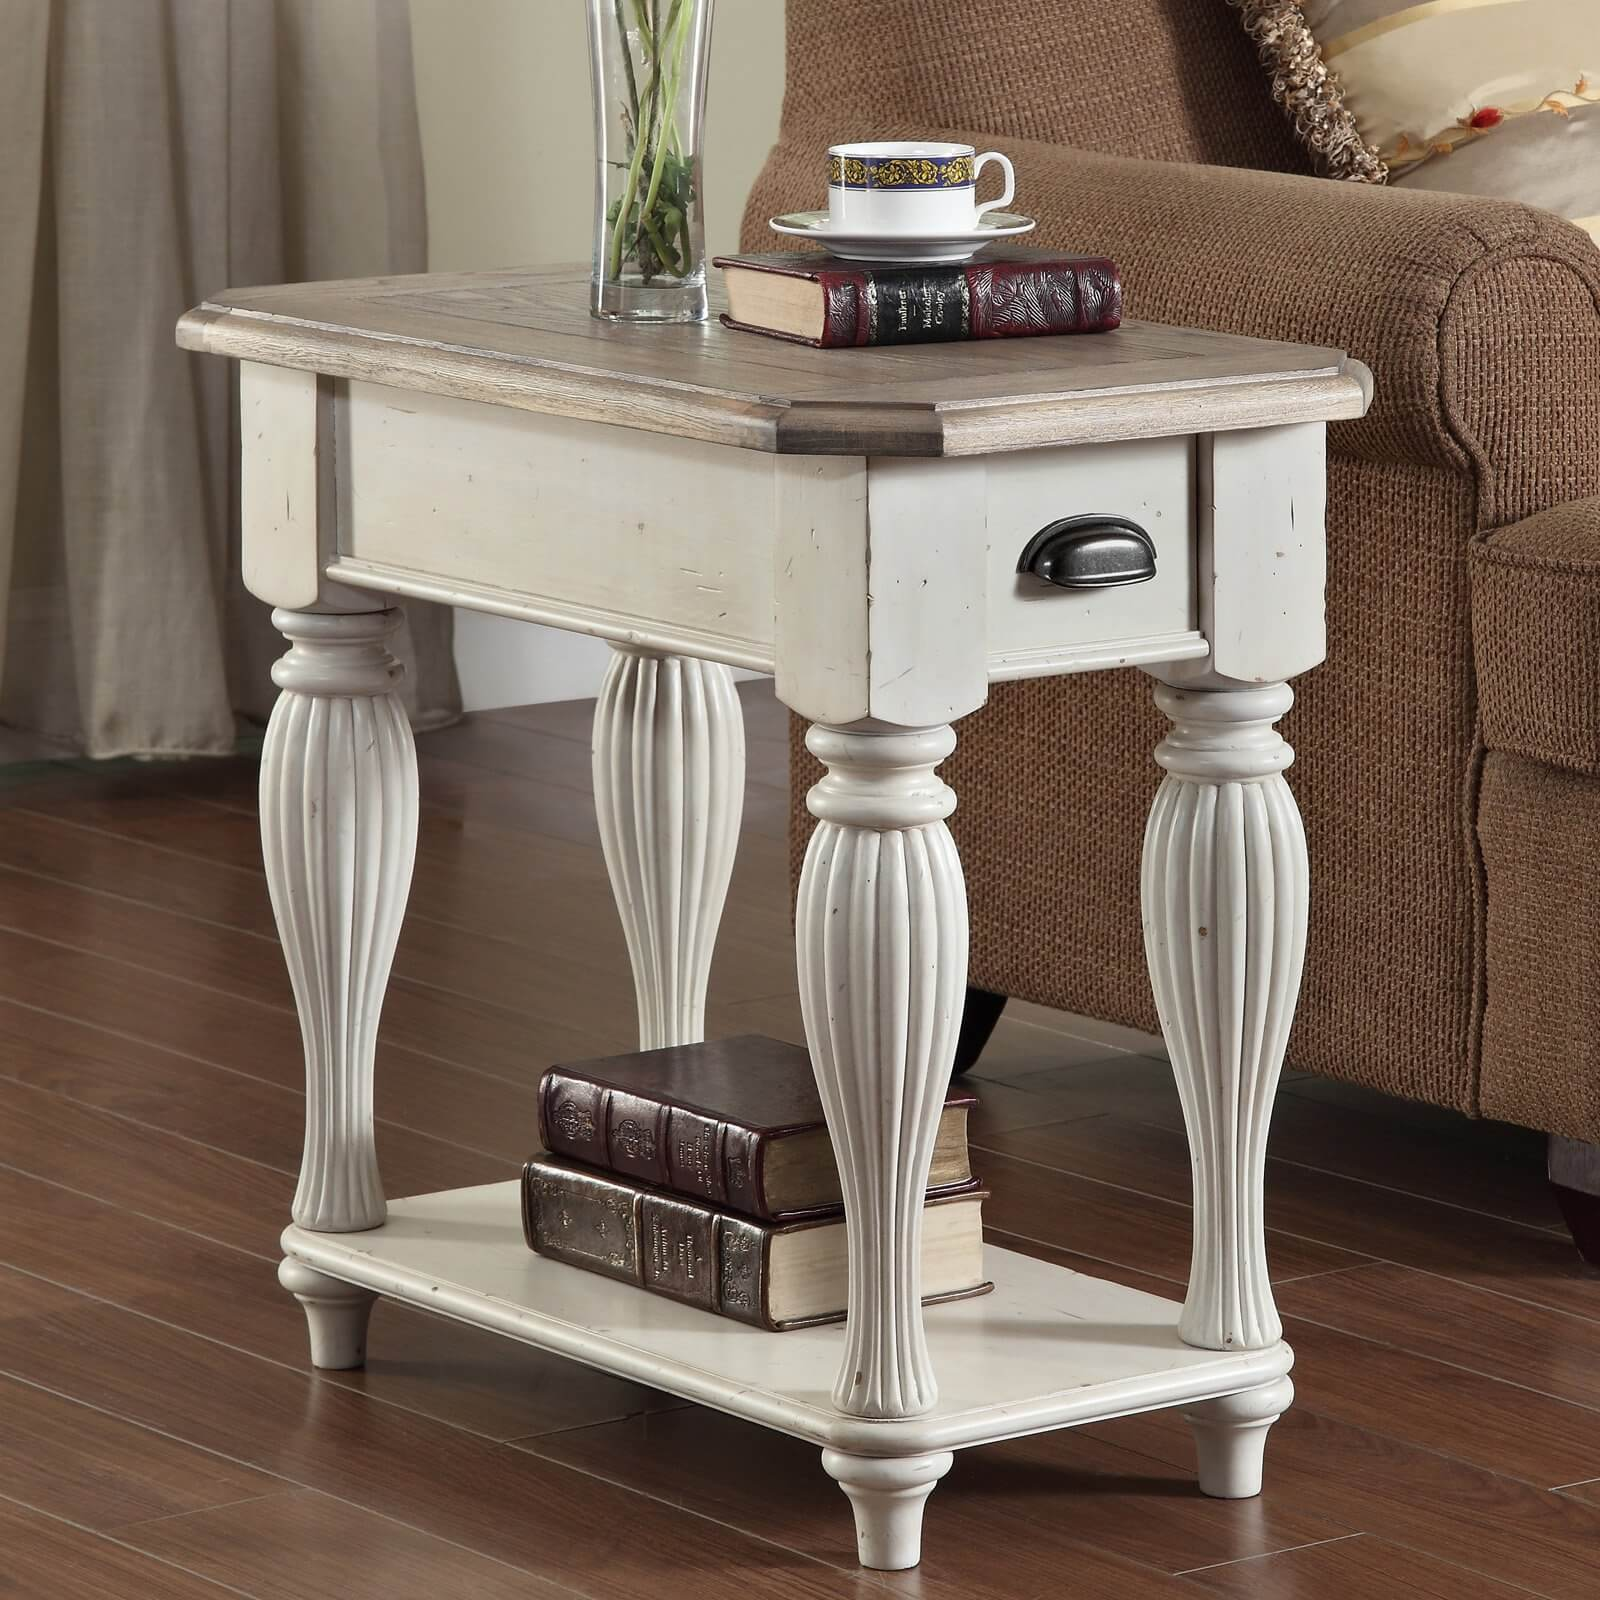 Elegant legs are connected by a single low shelf. A small drawer is above.